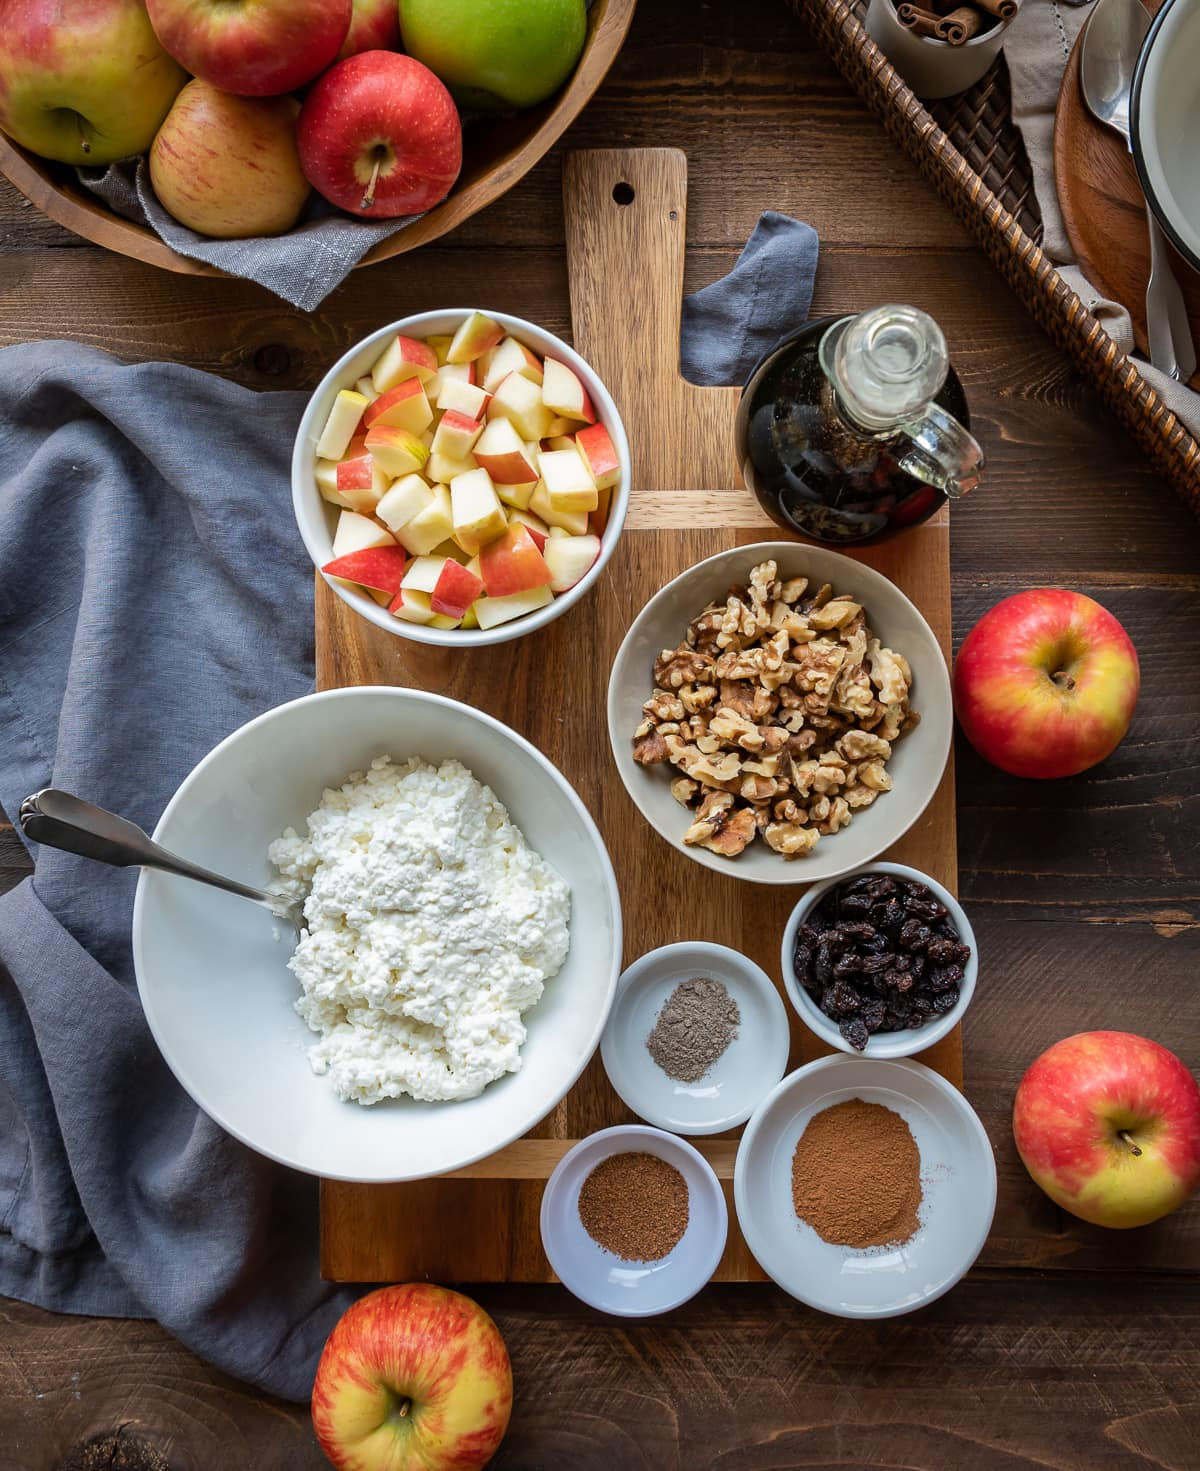 brown cutting board with bowls filled with ingredients for maple apple cinnamon cottage cheese breakfast bowls bowl of cottage cheese bowl of apples bowl of nuts small bowls of spices whole apples